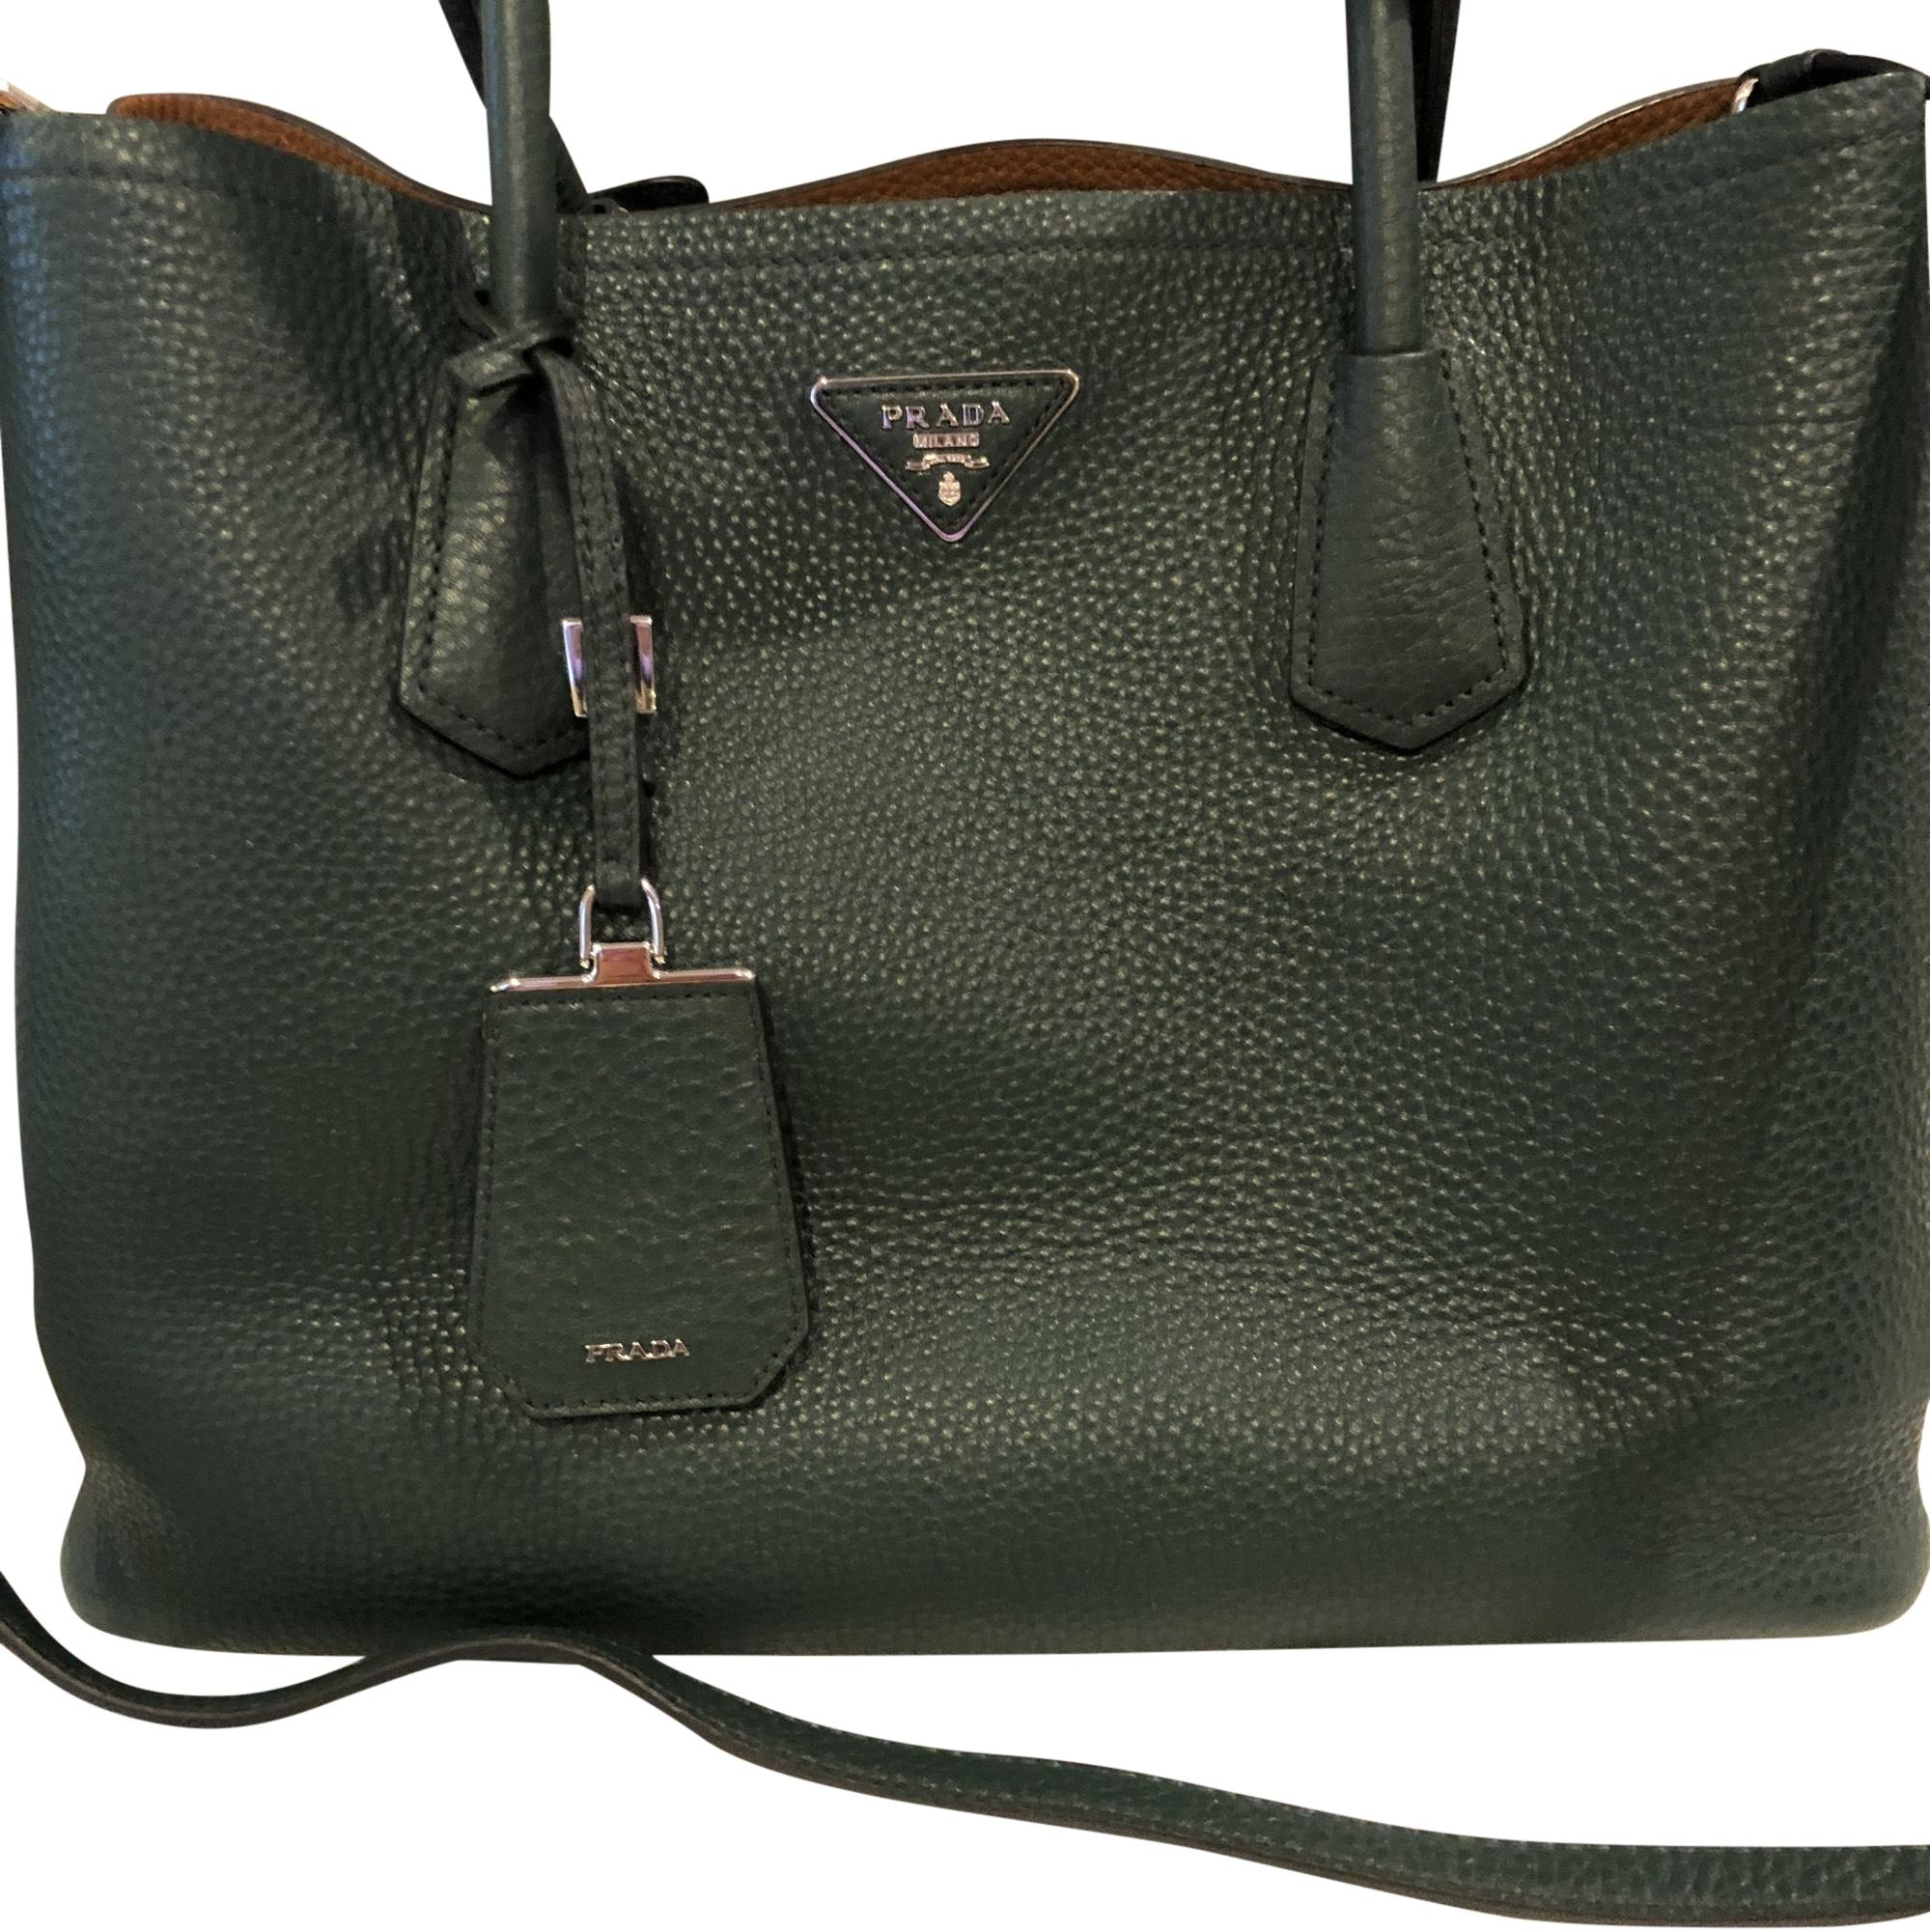 9ed9e0dd9ecc ... order prada tote in emerald green and tan b6c7e 47e29